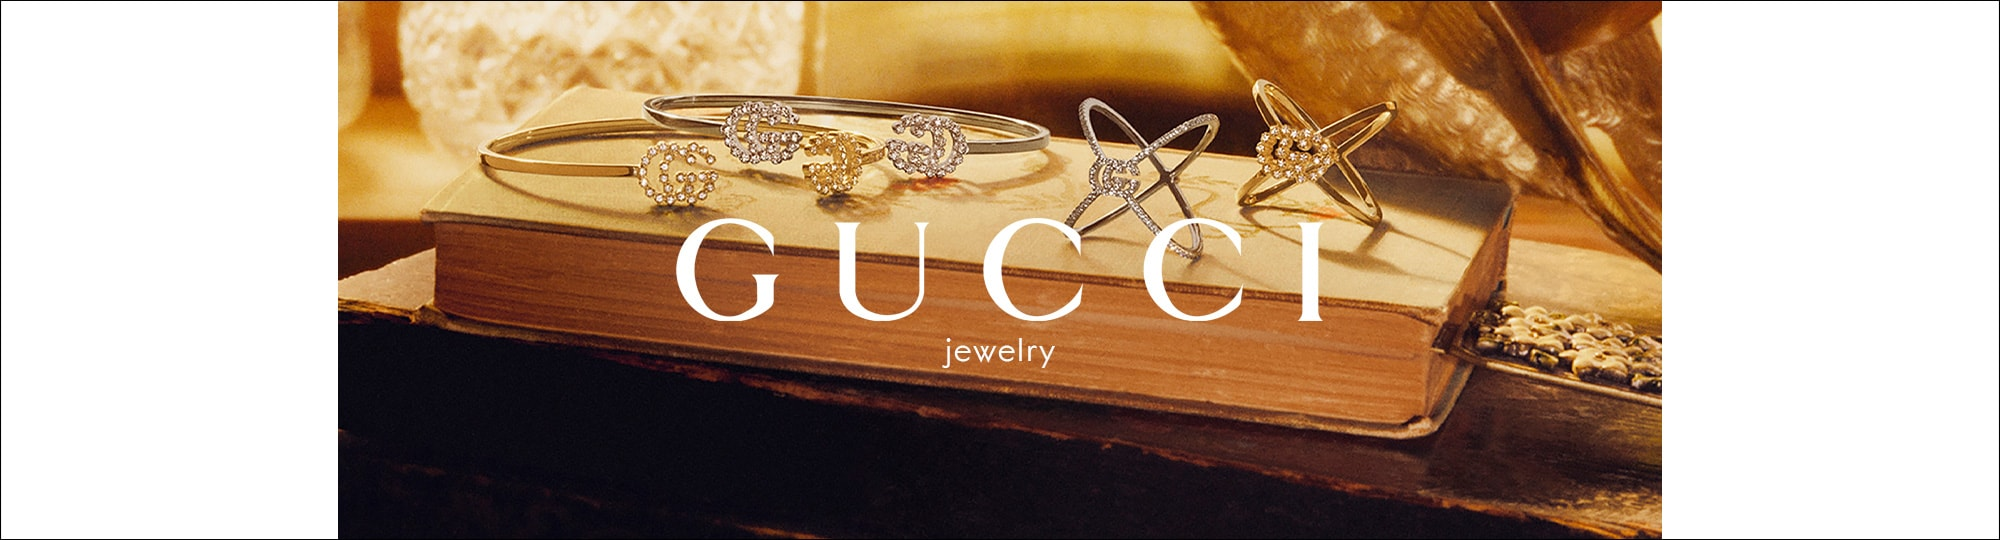 Gucci Jewelry Available at Manfredi Jewels.